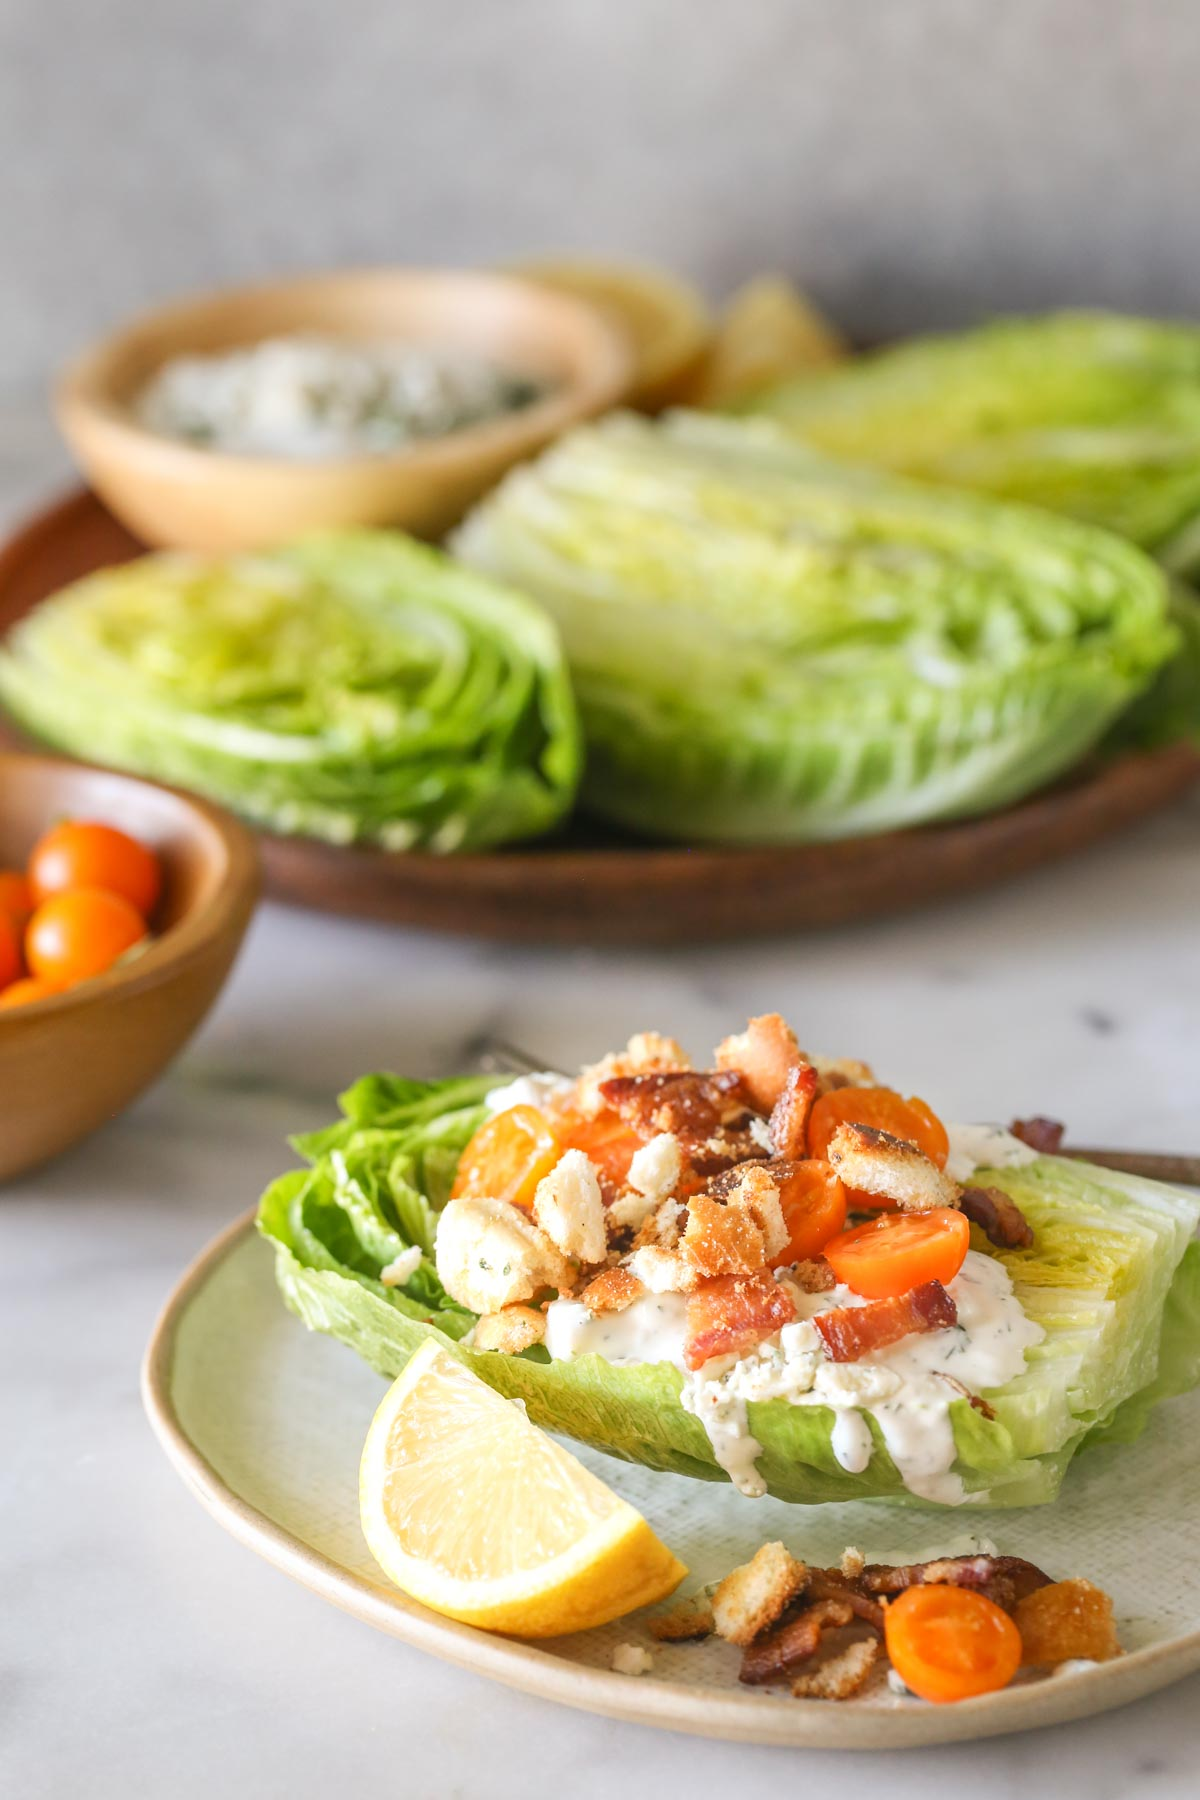 A Wedge Style BLT Salad on a plate with a lemon wedge, with a wood bowl of Sungold tomatoes and a wood platter with the romaine lettuce halves, a bowl of blue cheese dressing and lemon wedges on it in the background.